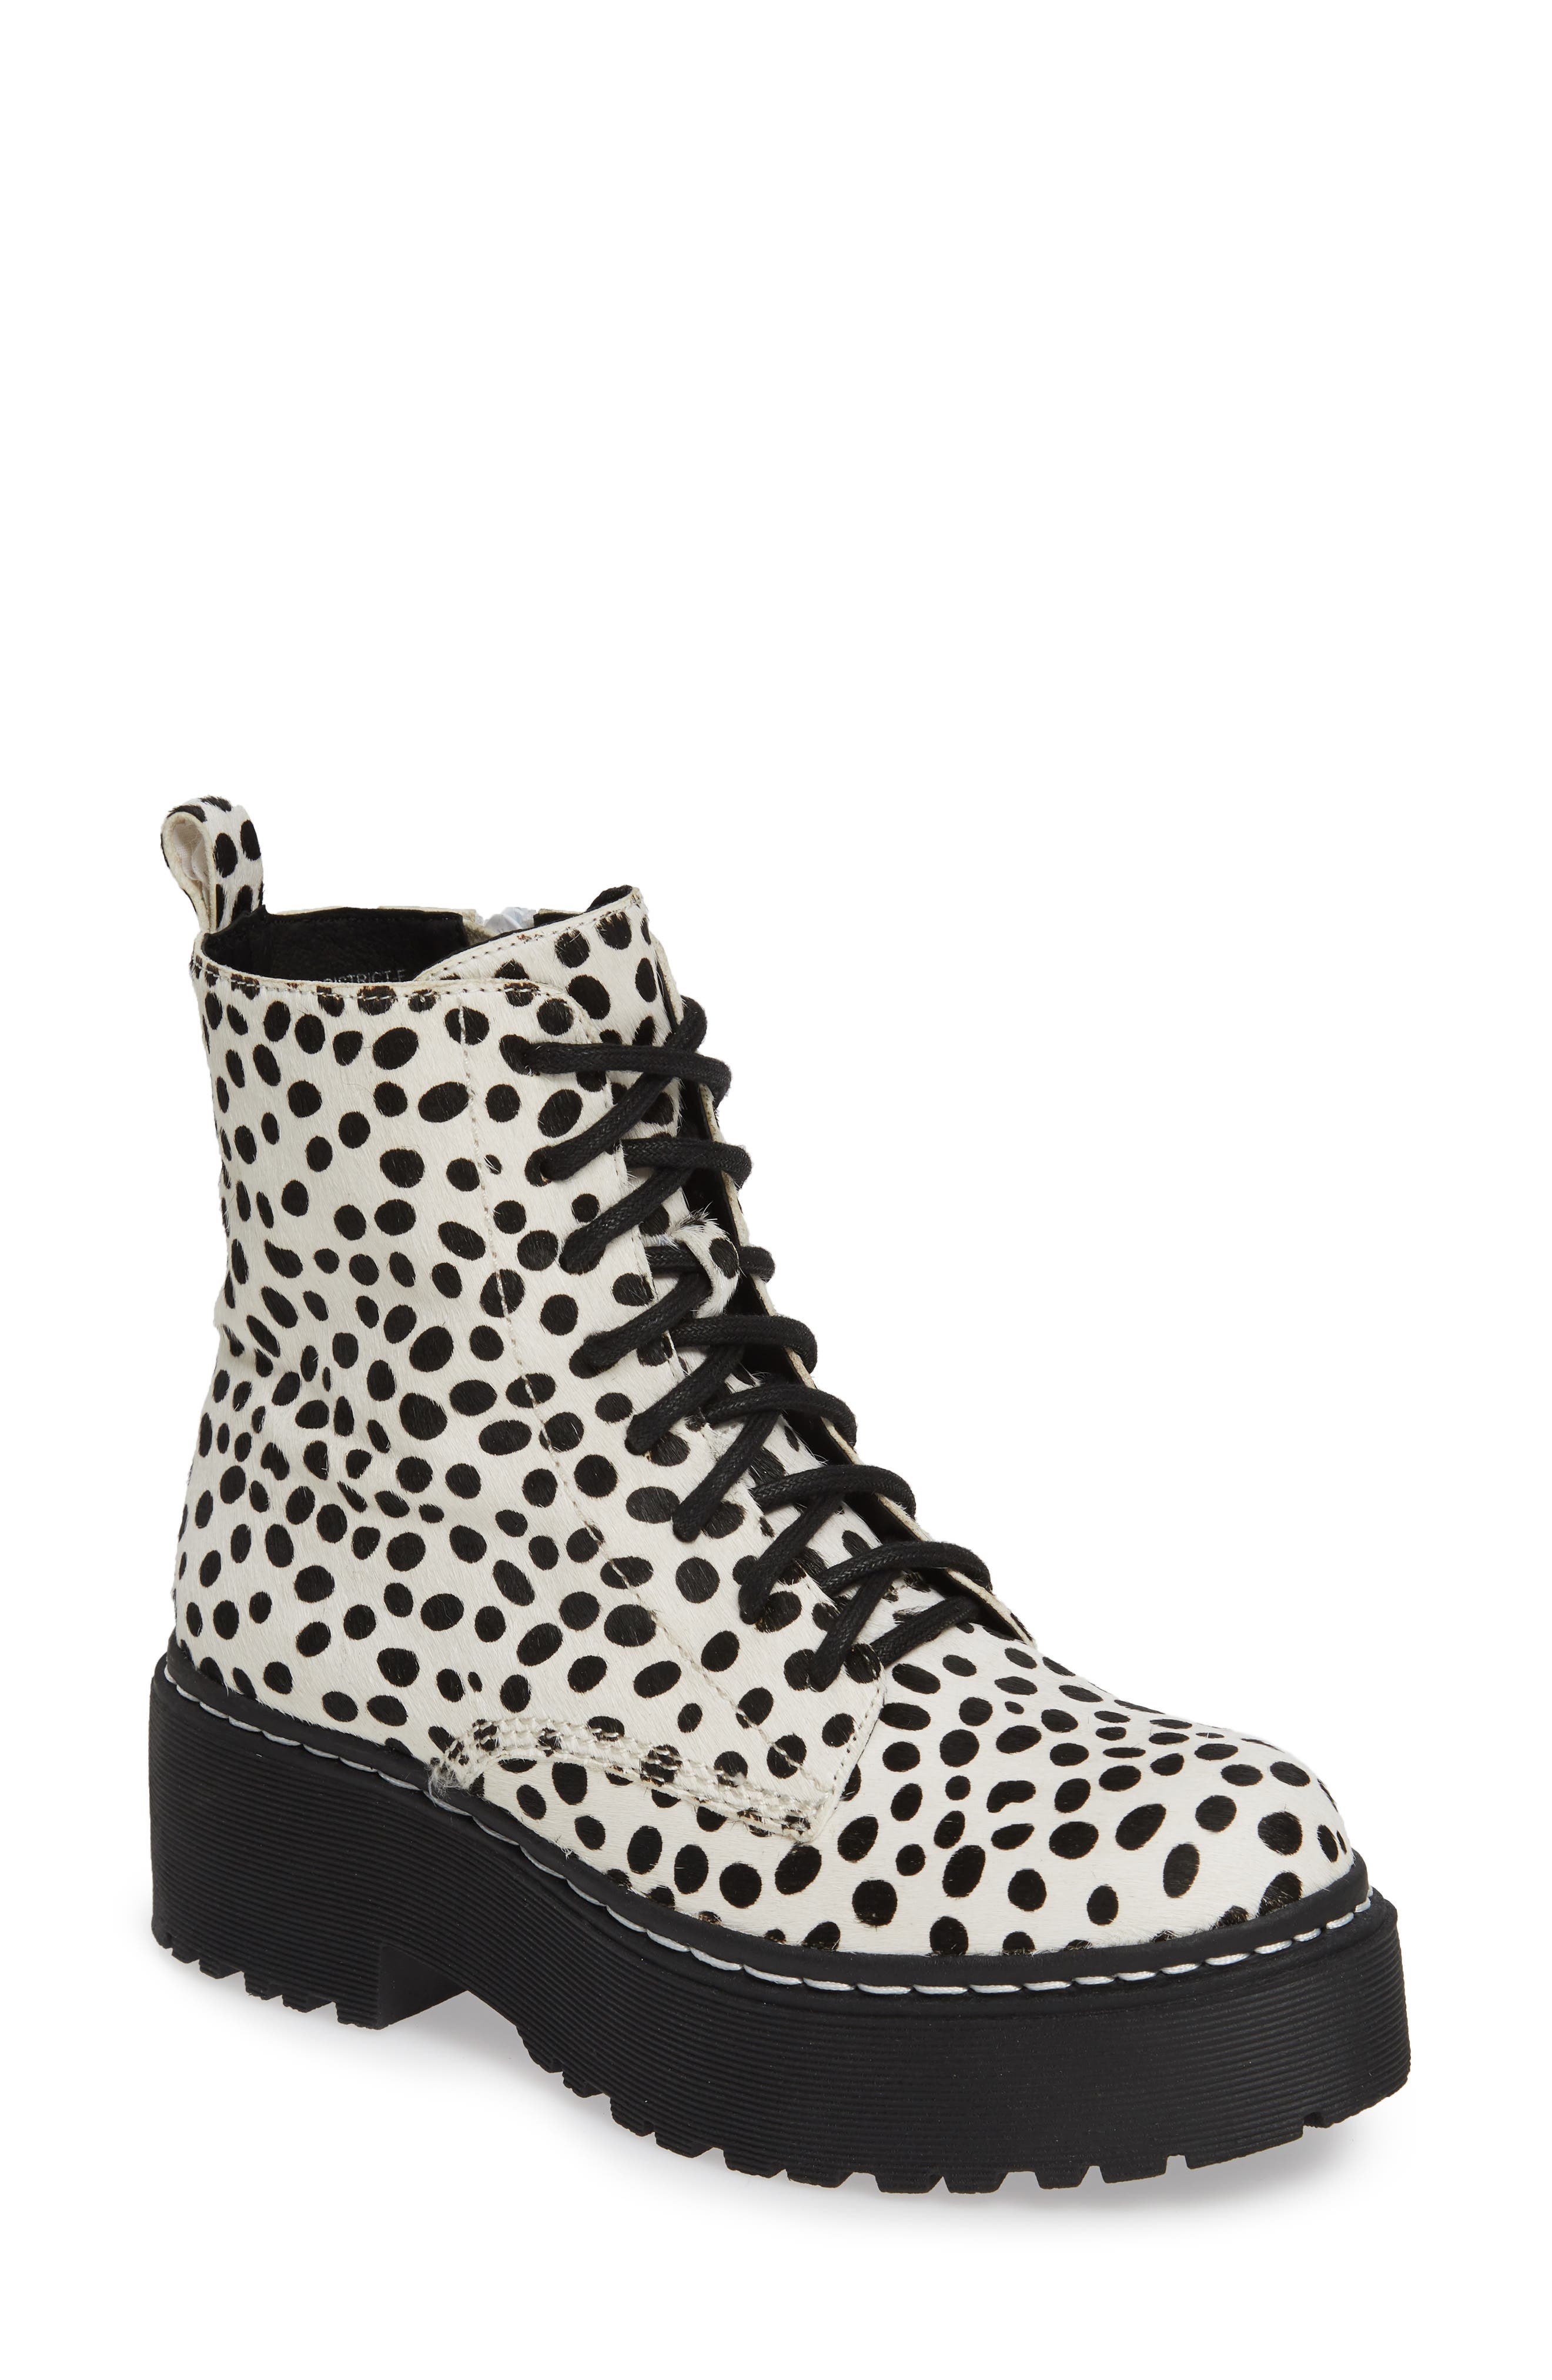 Jeffrey Campbell District-F Genuine Calf Hair Platform Boot- White